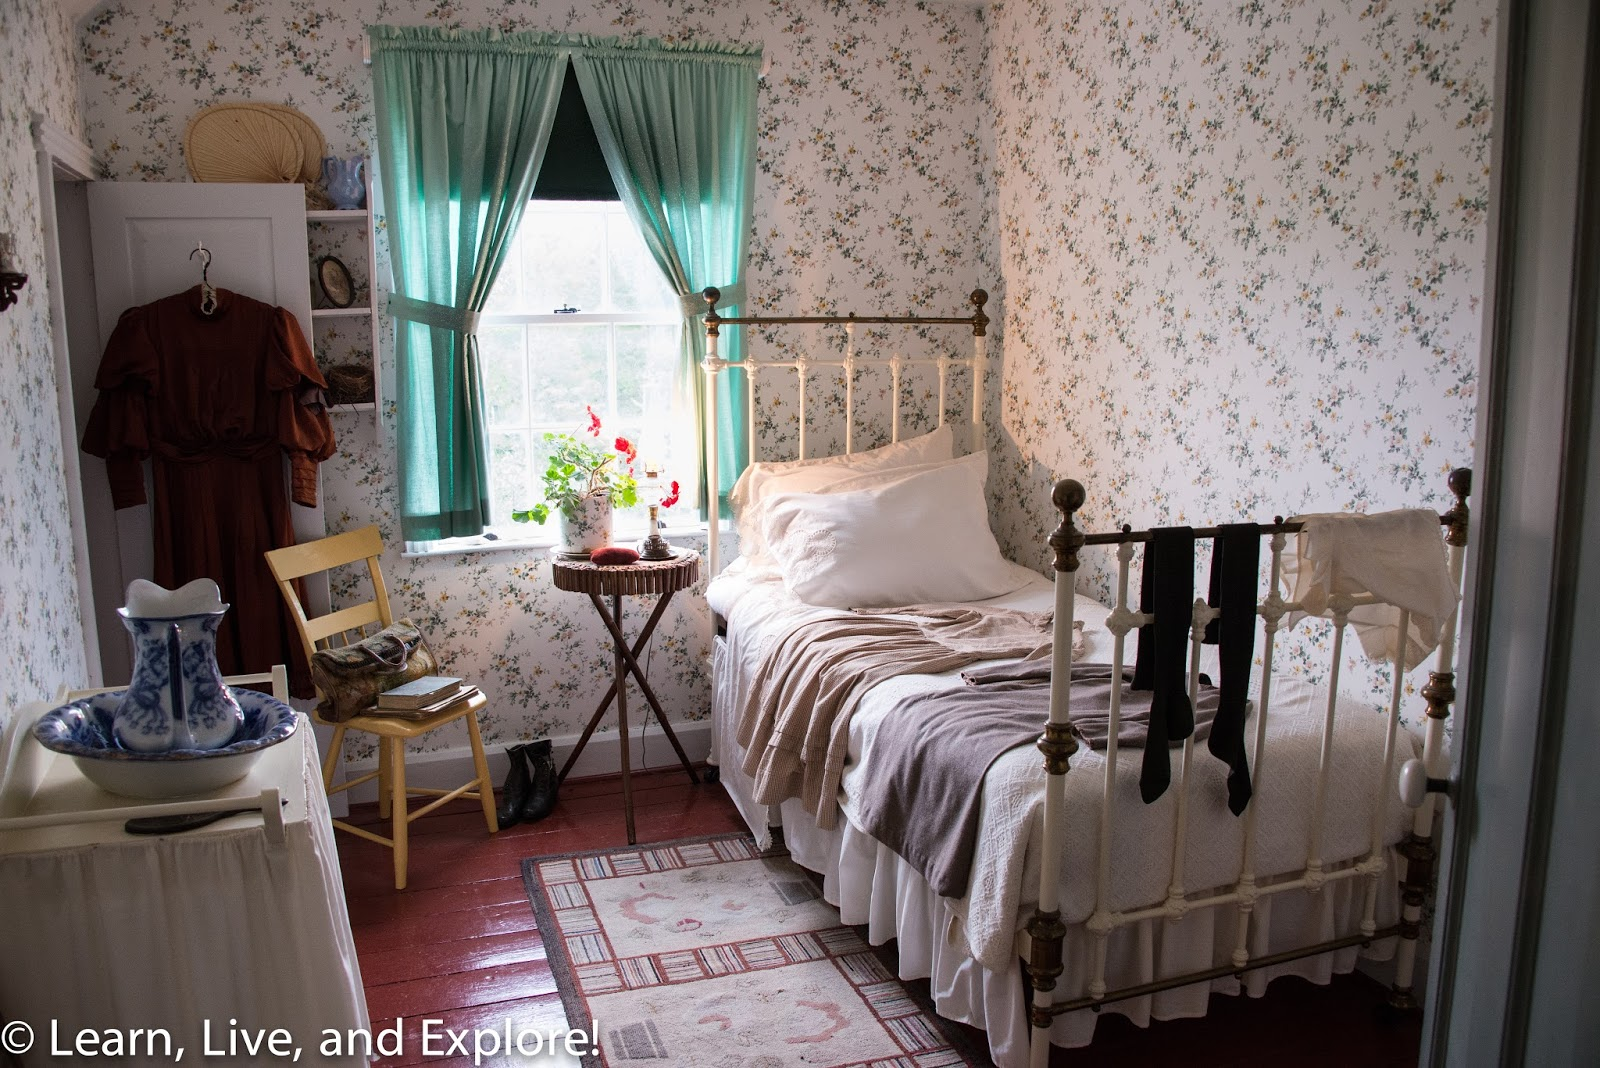 touring anne of green gables' canada: part 2 - prince edward